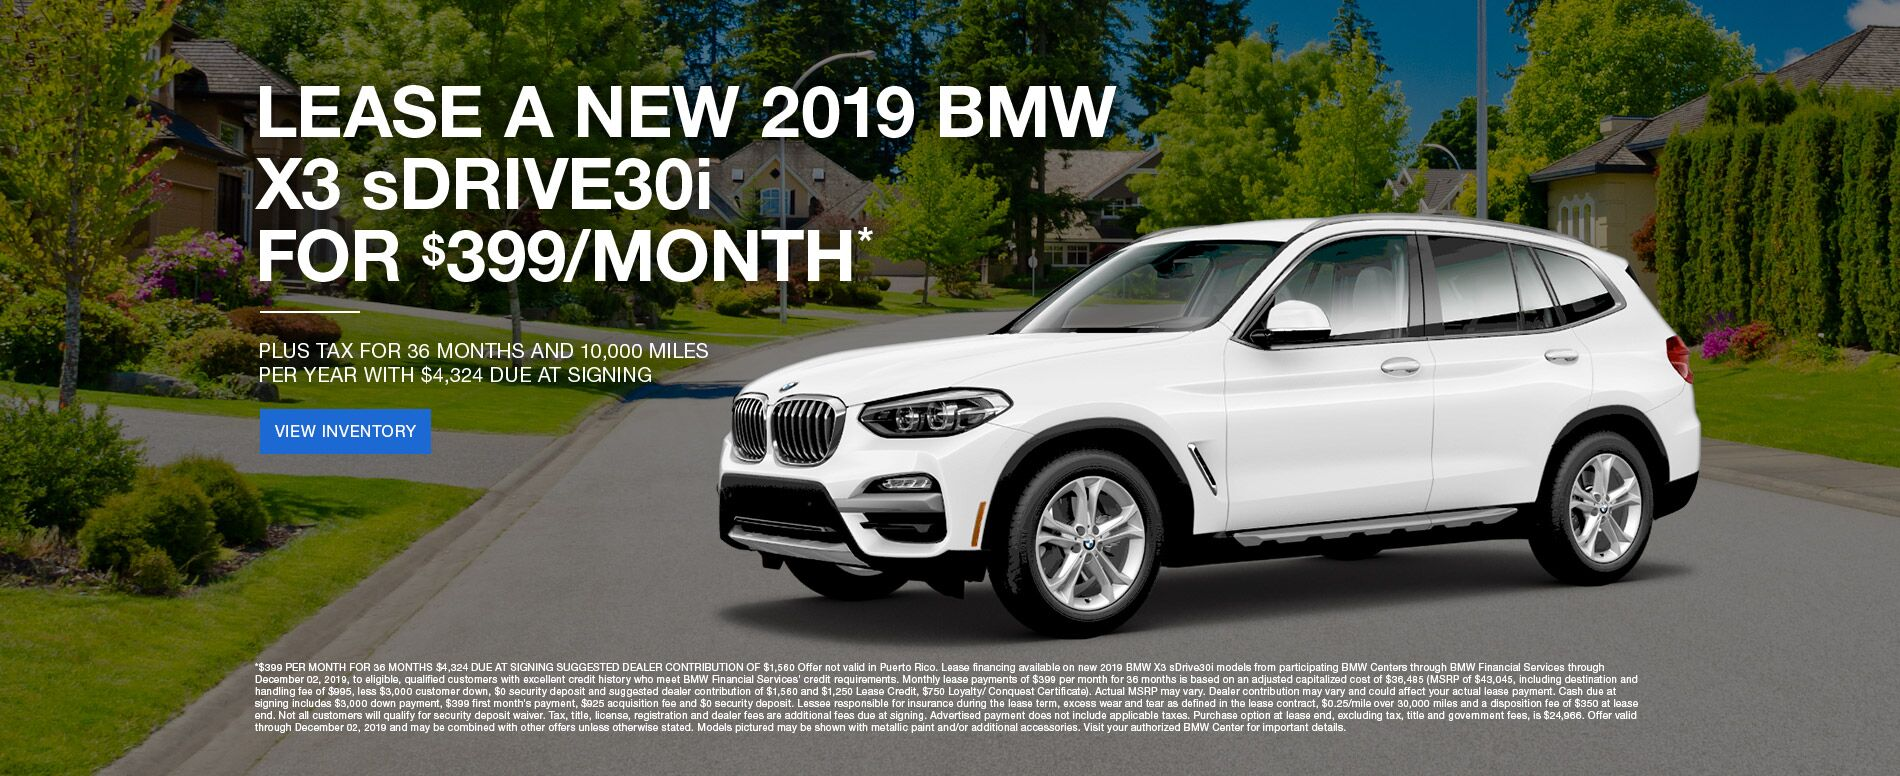 Lease a New 2019 BMW X3 sDRIVE30i